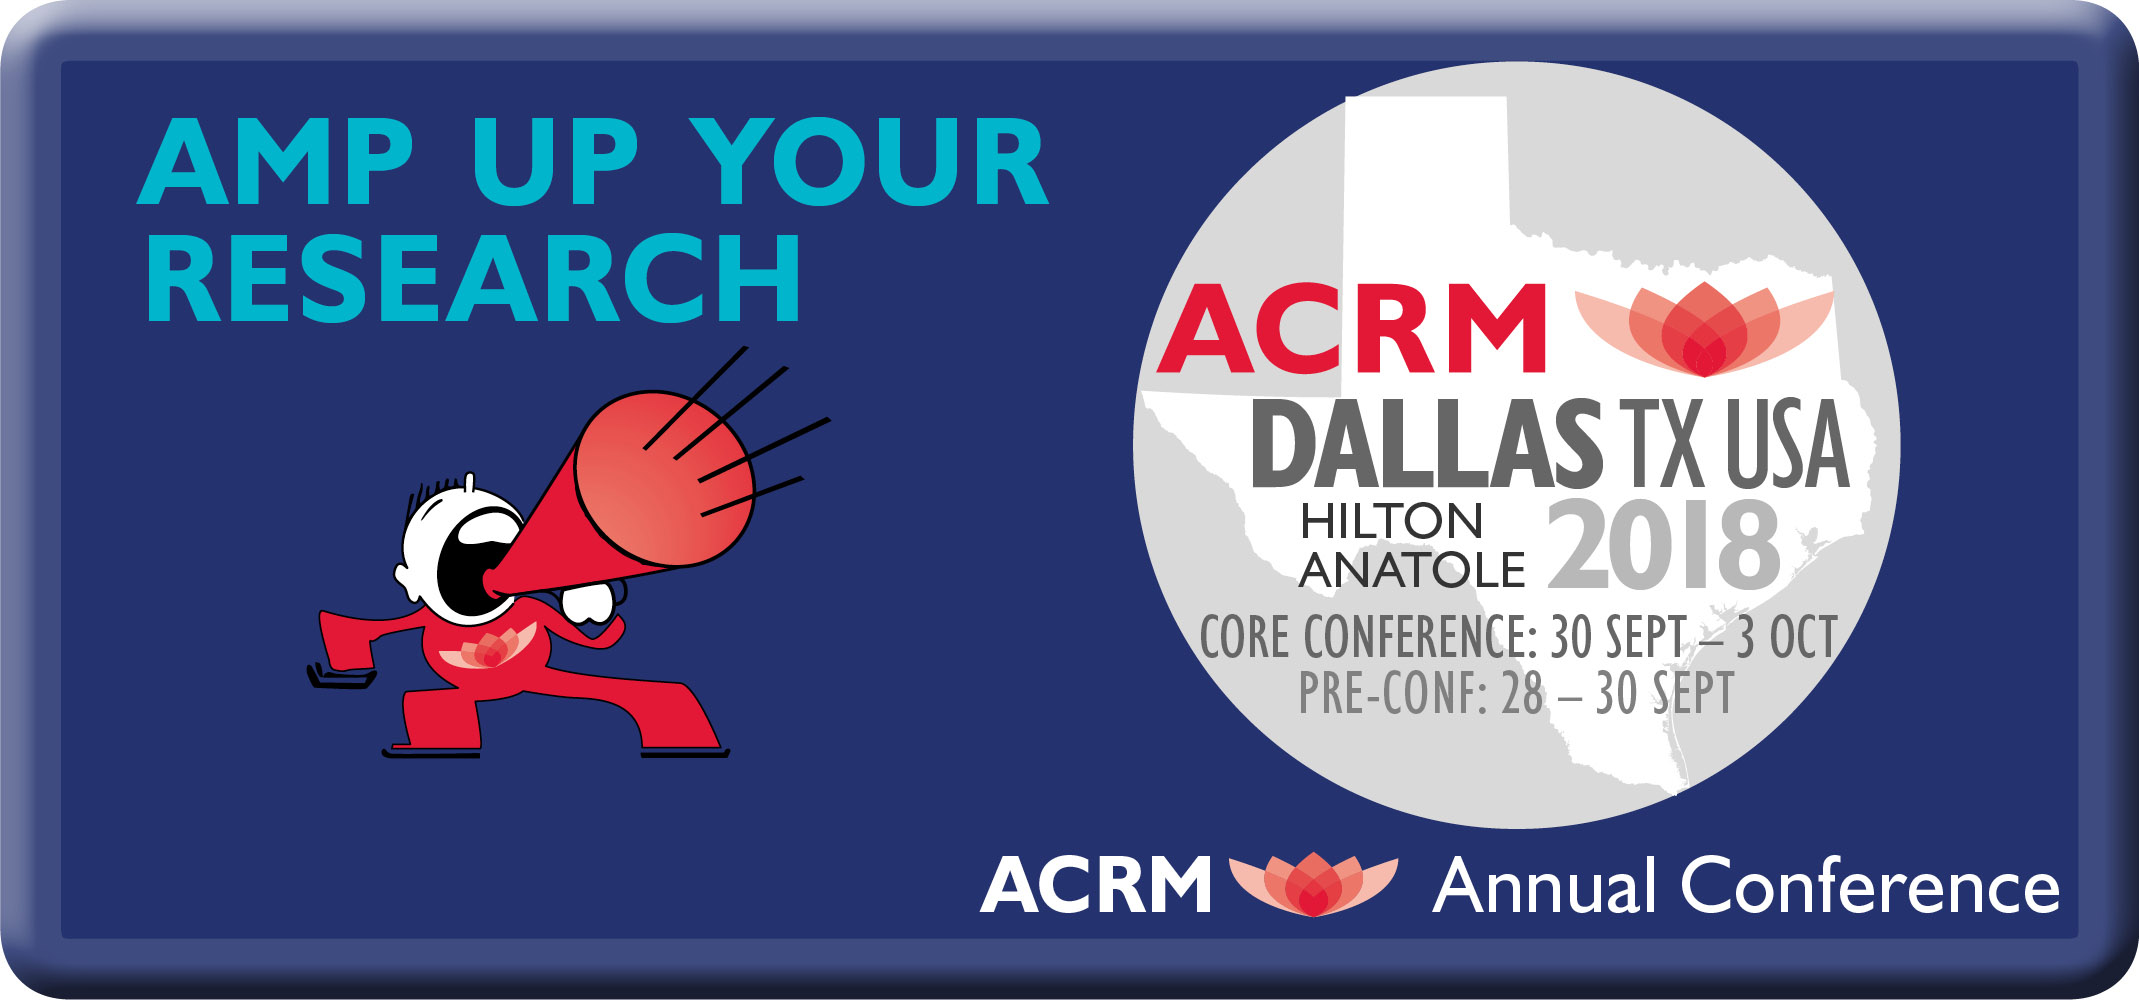 Amp up your research! ACRM Annual Conference Dallas 2018